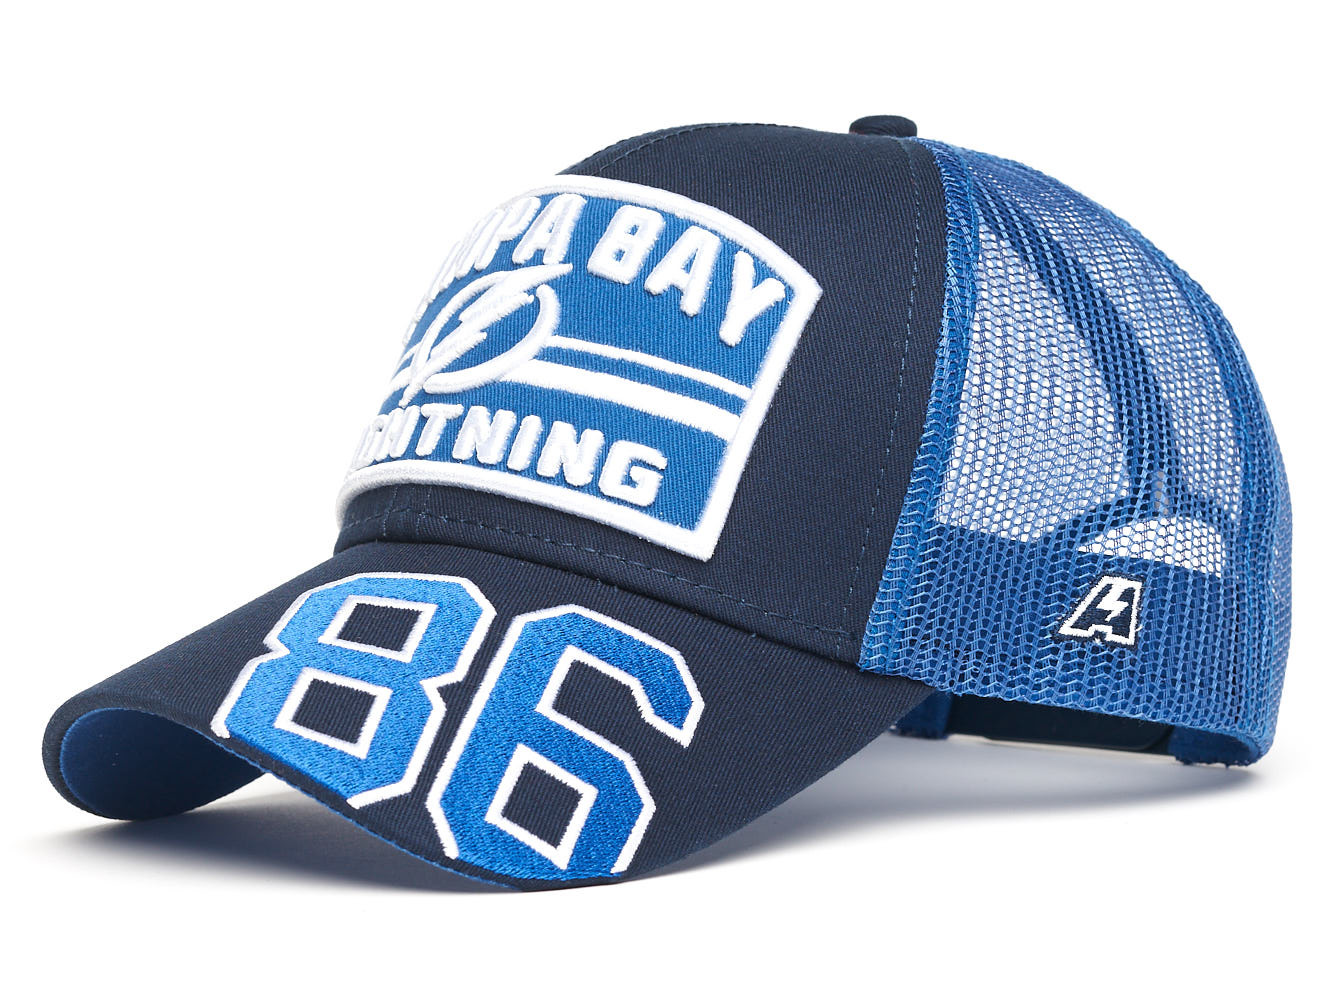 Бейсболка NHL Tampa Bay Lightning № 86